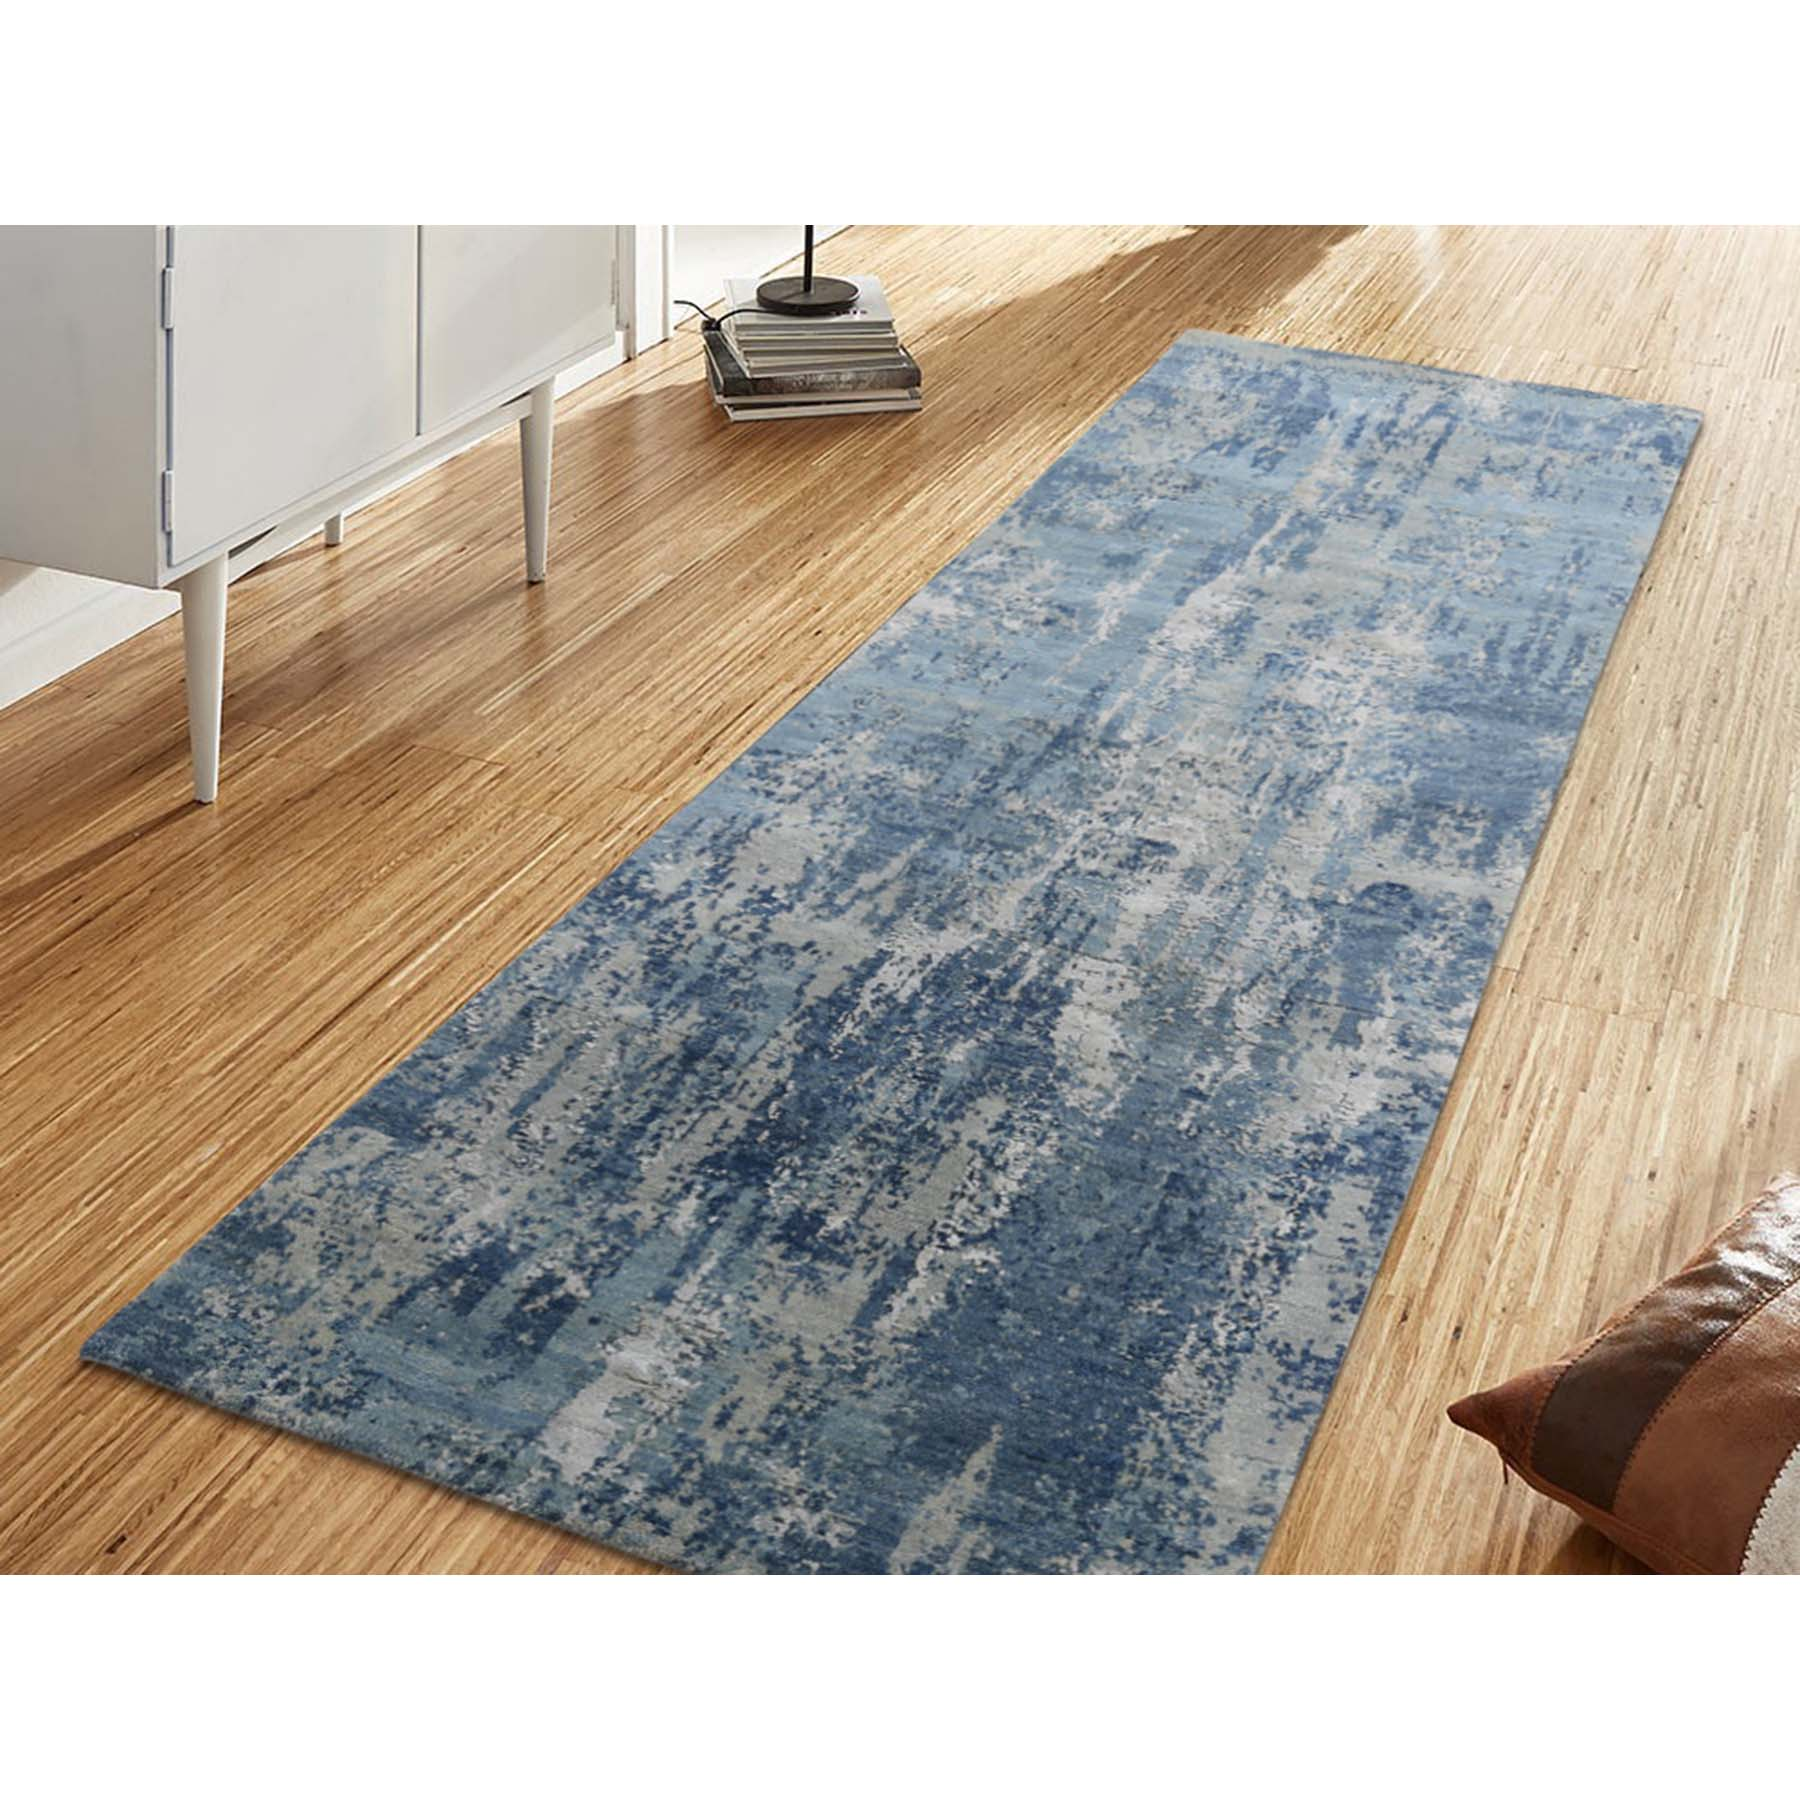 2 6 X8 3 Blue Gray Abstract Design Wool And Pure Silk Hand Woven Oriental Runner